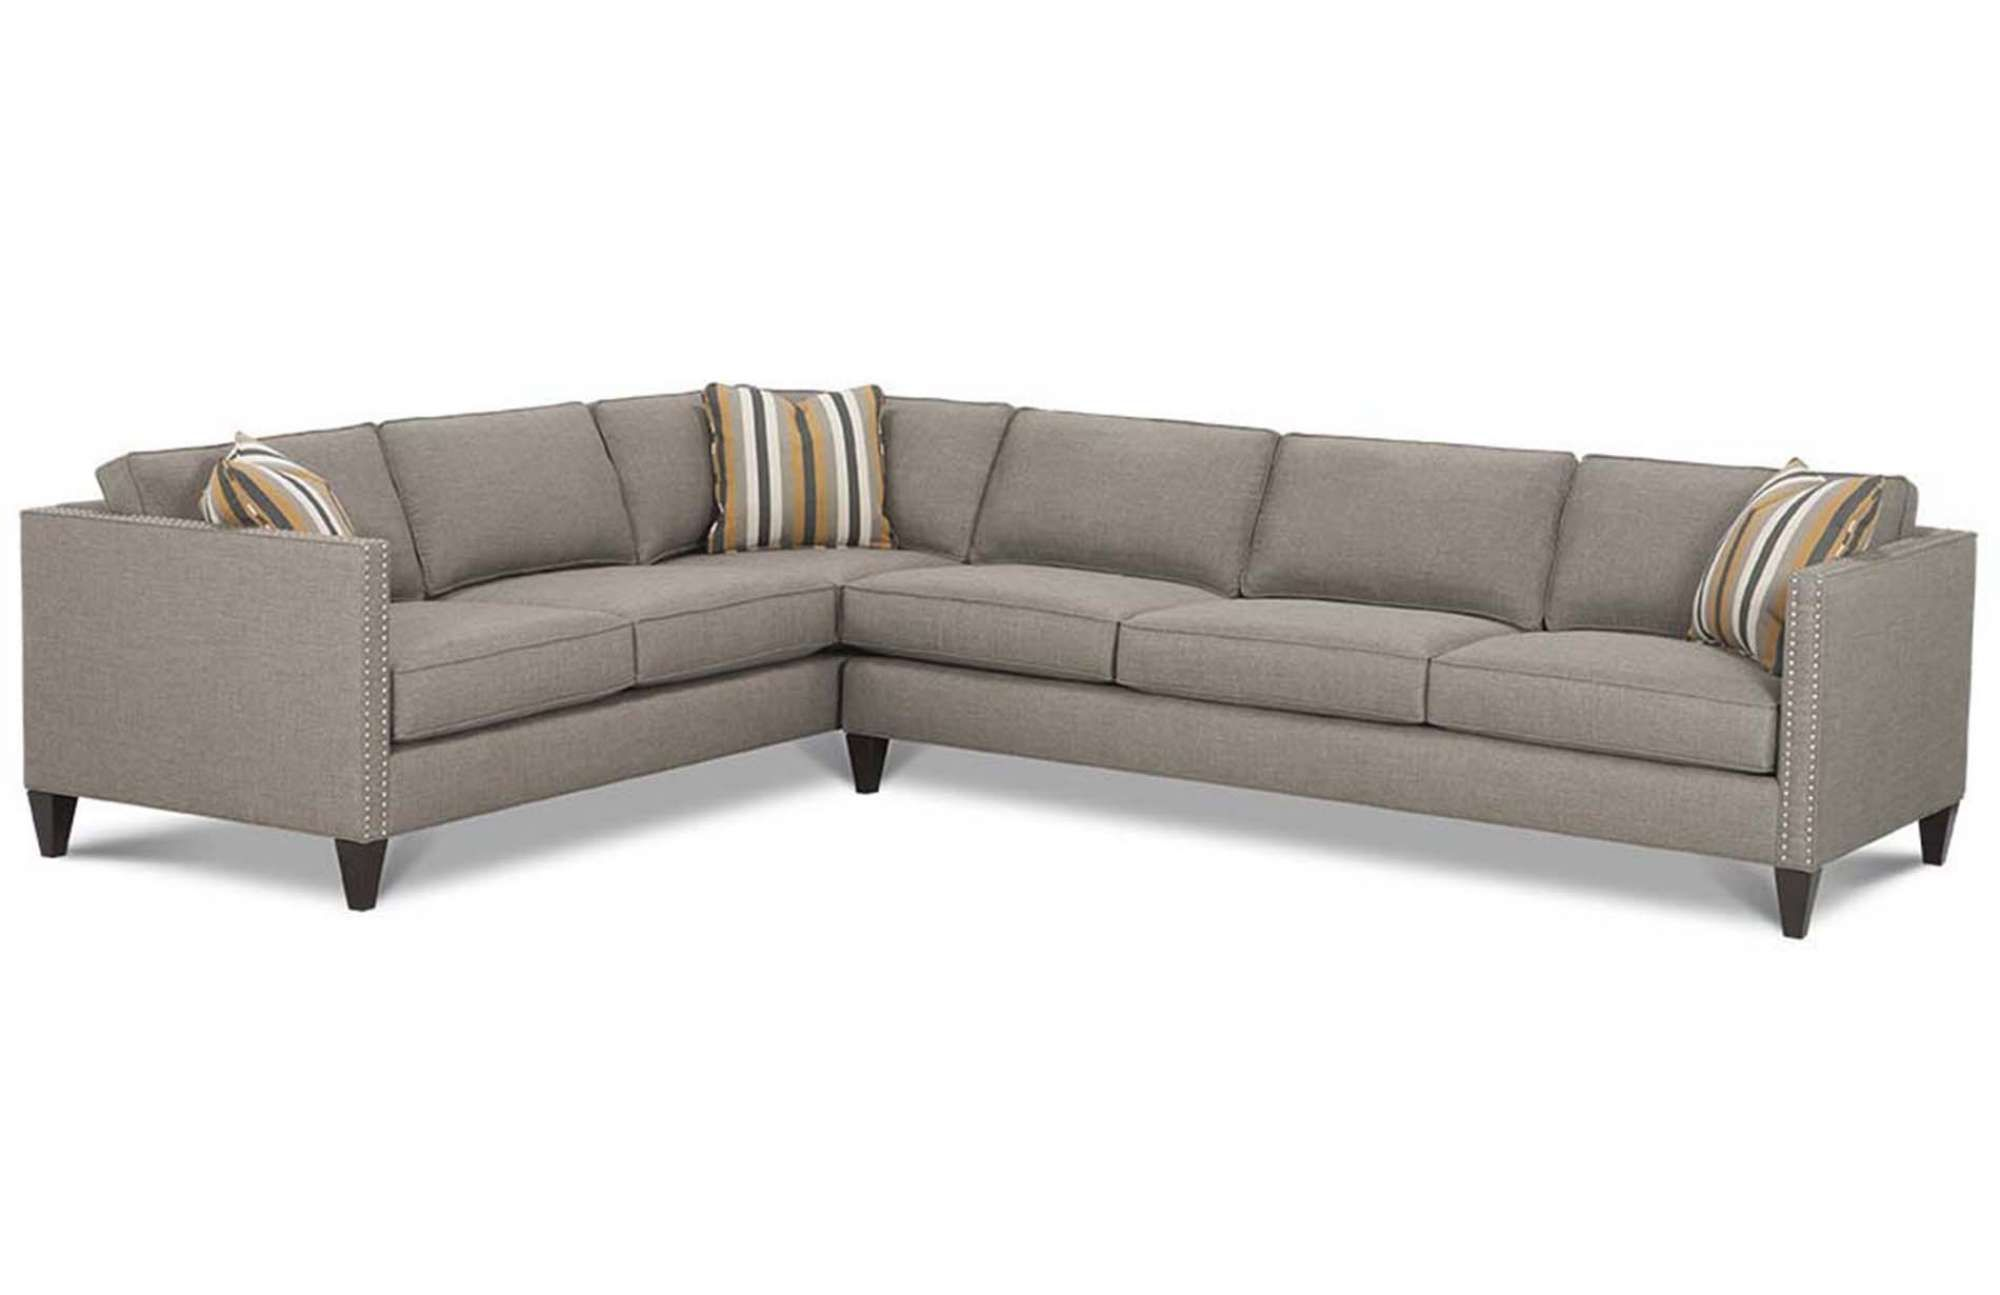 Modern Mix Plain Back Sectional - Rowe Furniture   Sofas I Love   Pinterest   Modern and Furniture ideas  sc 1 st  Pinterest : rowe sectionals - Sectionals, Sofas & Couches